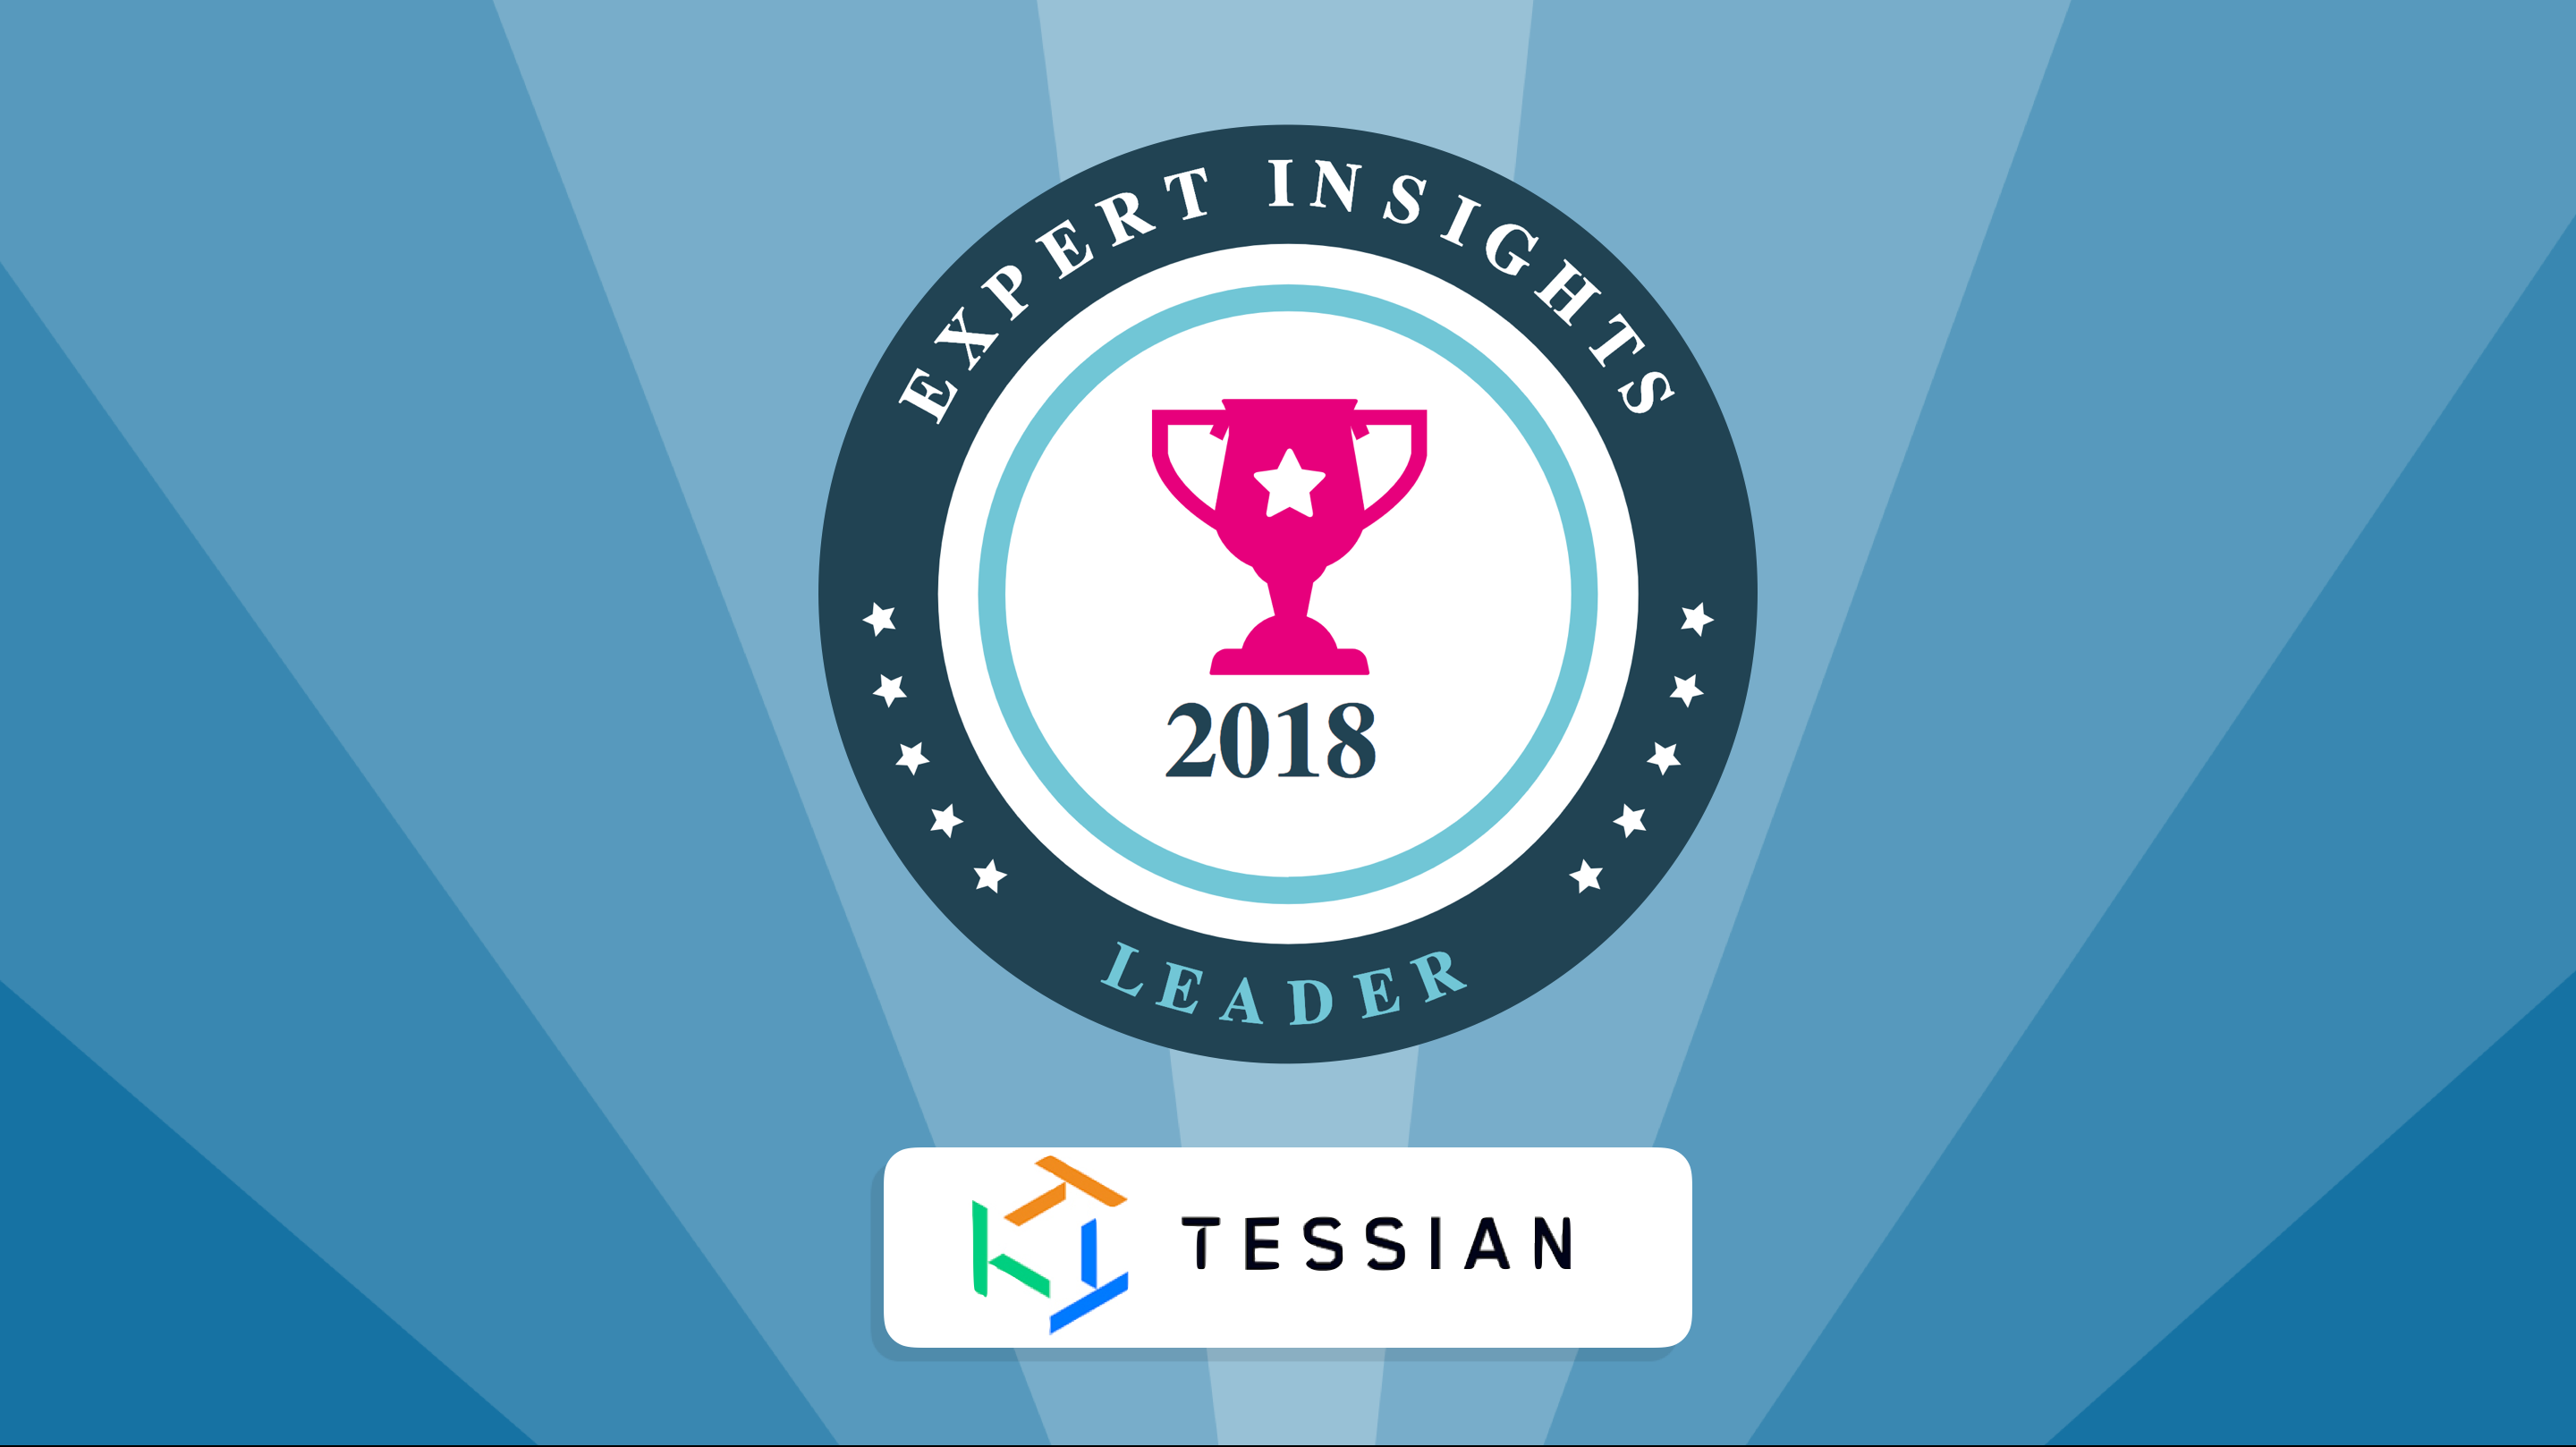 Expert Insights Tessian Award